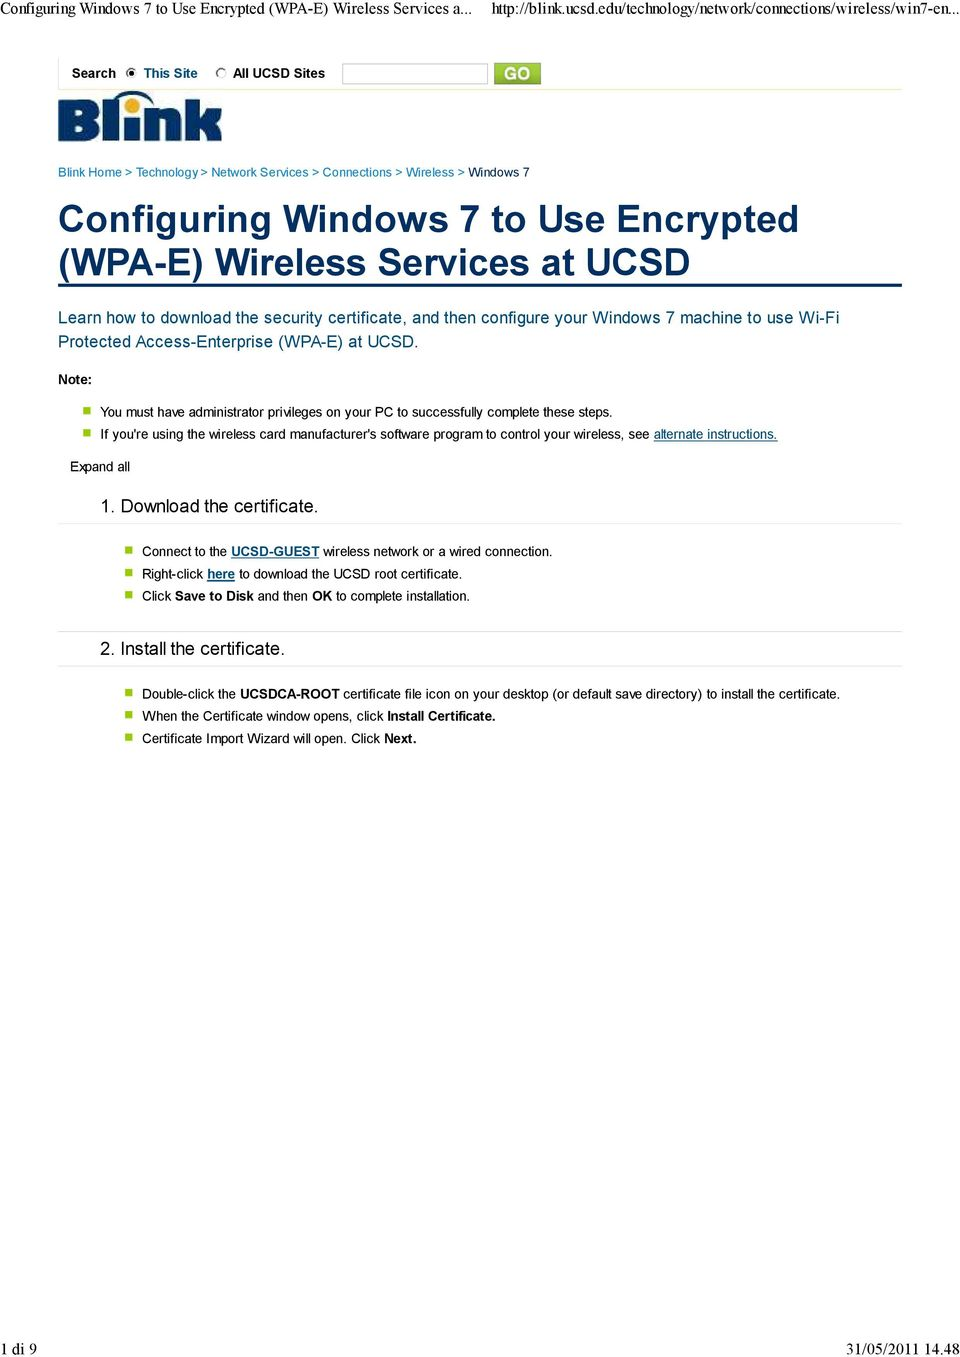 to download the security certificate, and then configure your Windows 7 machine to use Wi-Fi Protected Access-Enterprise (WPA-E) at UCSD.